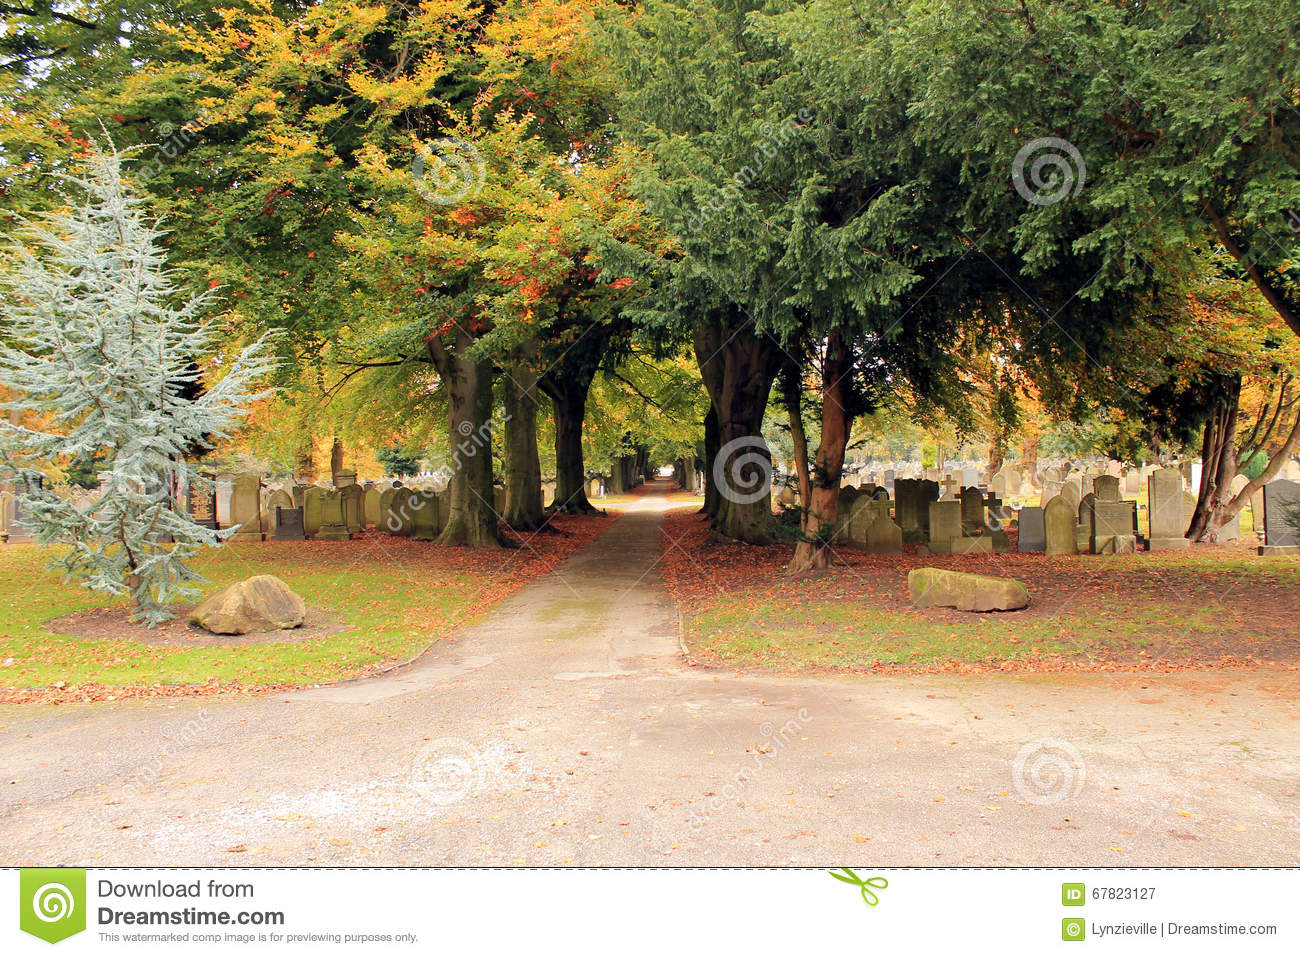 Path through cemetery under a canopy of trees